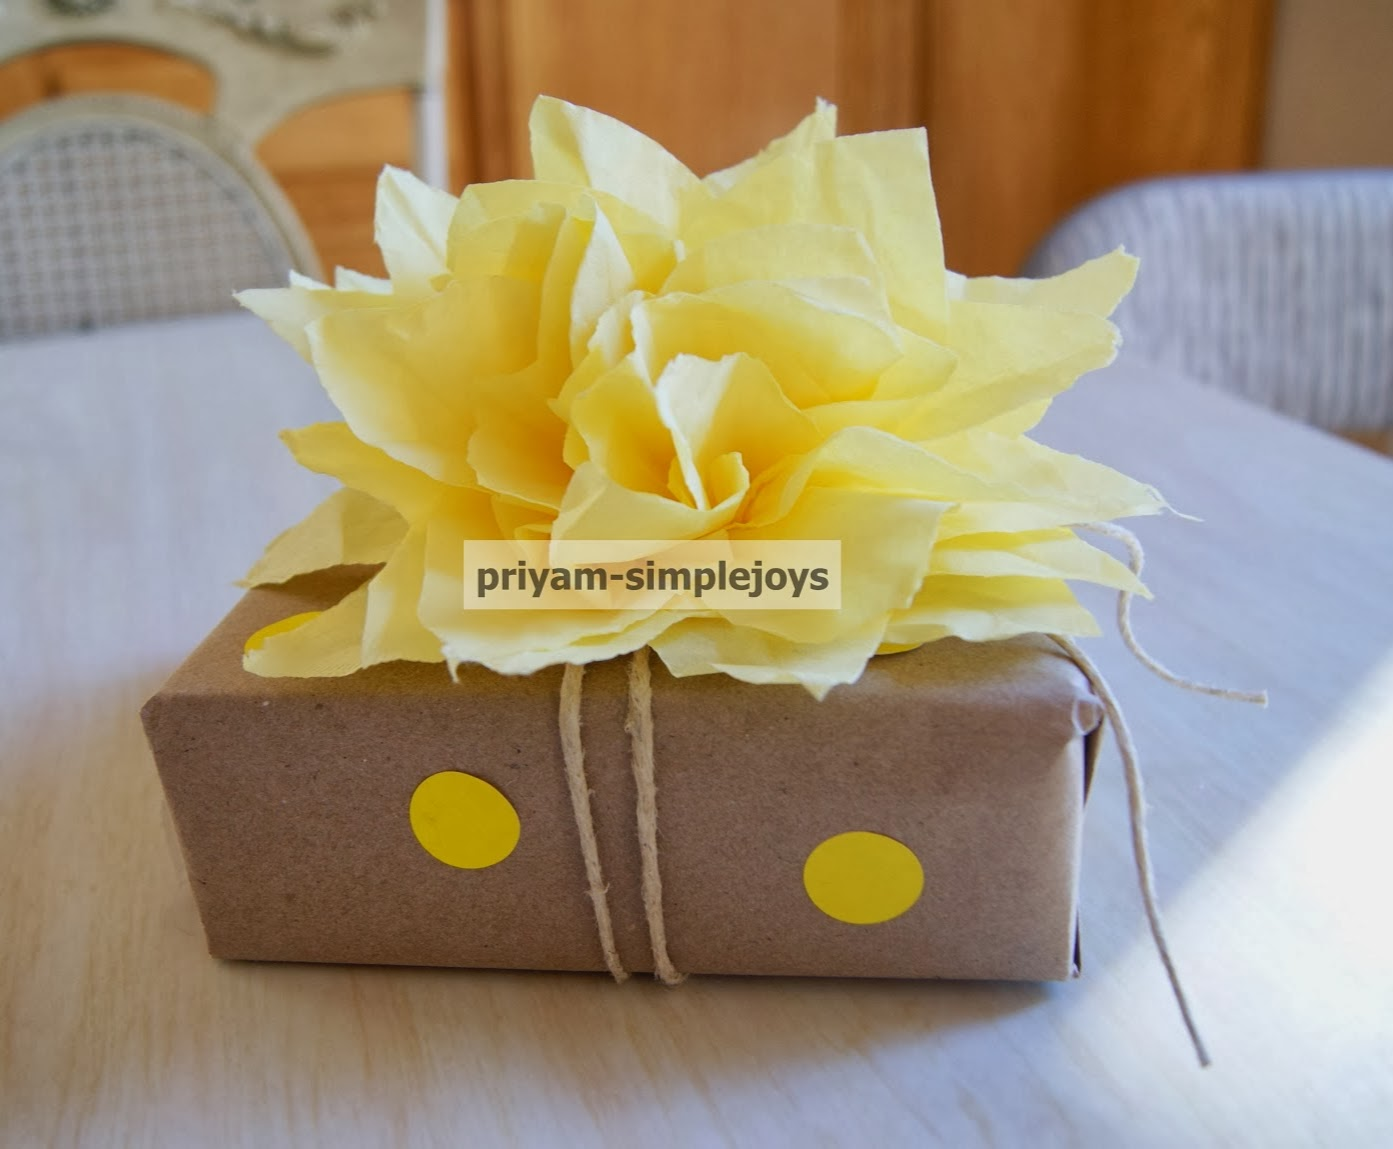 Gift wrapping ideas, shared by SimpleJoys